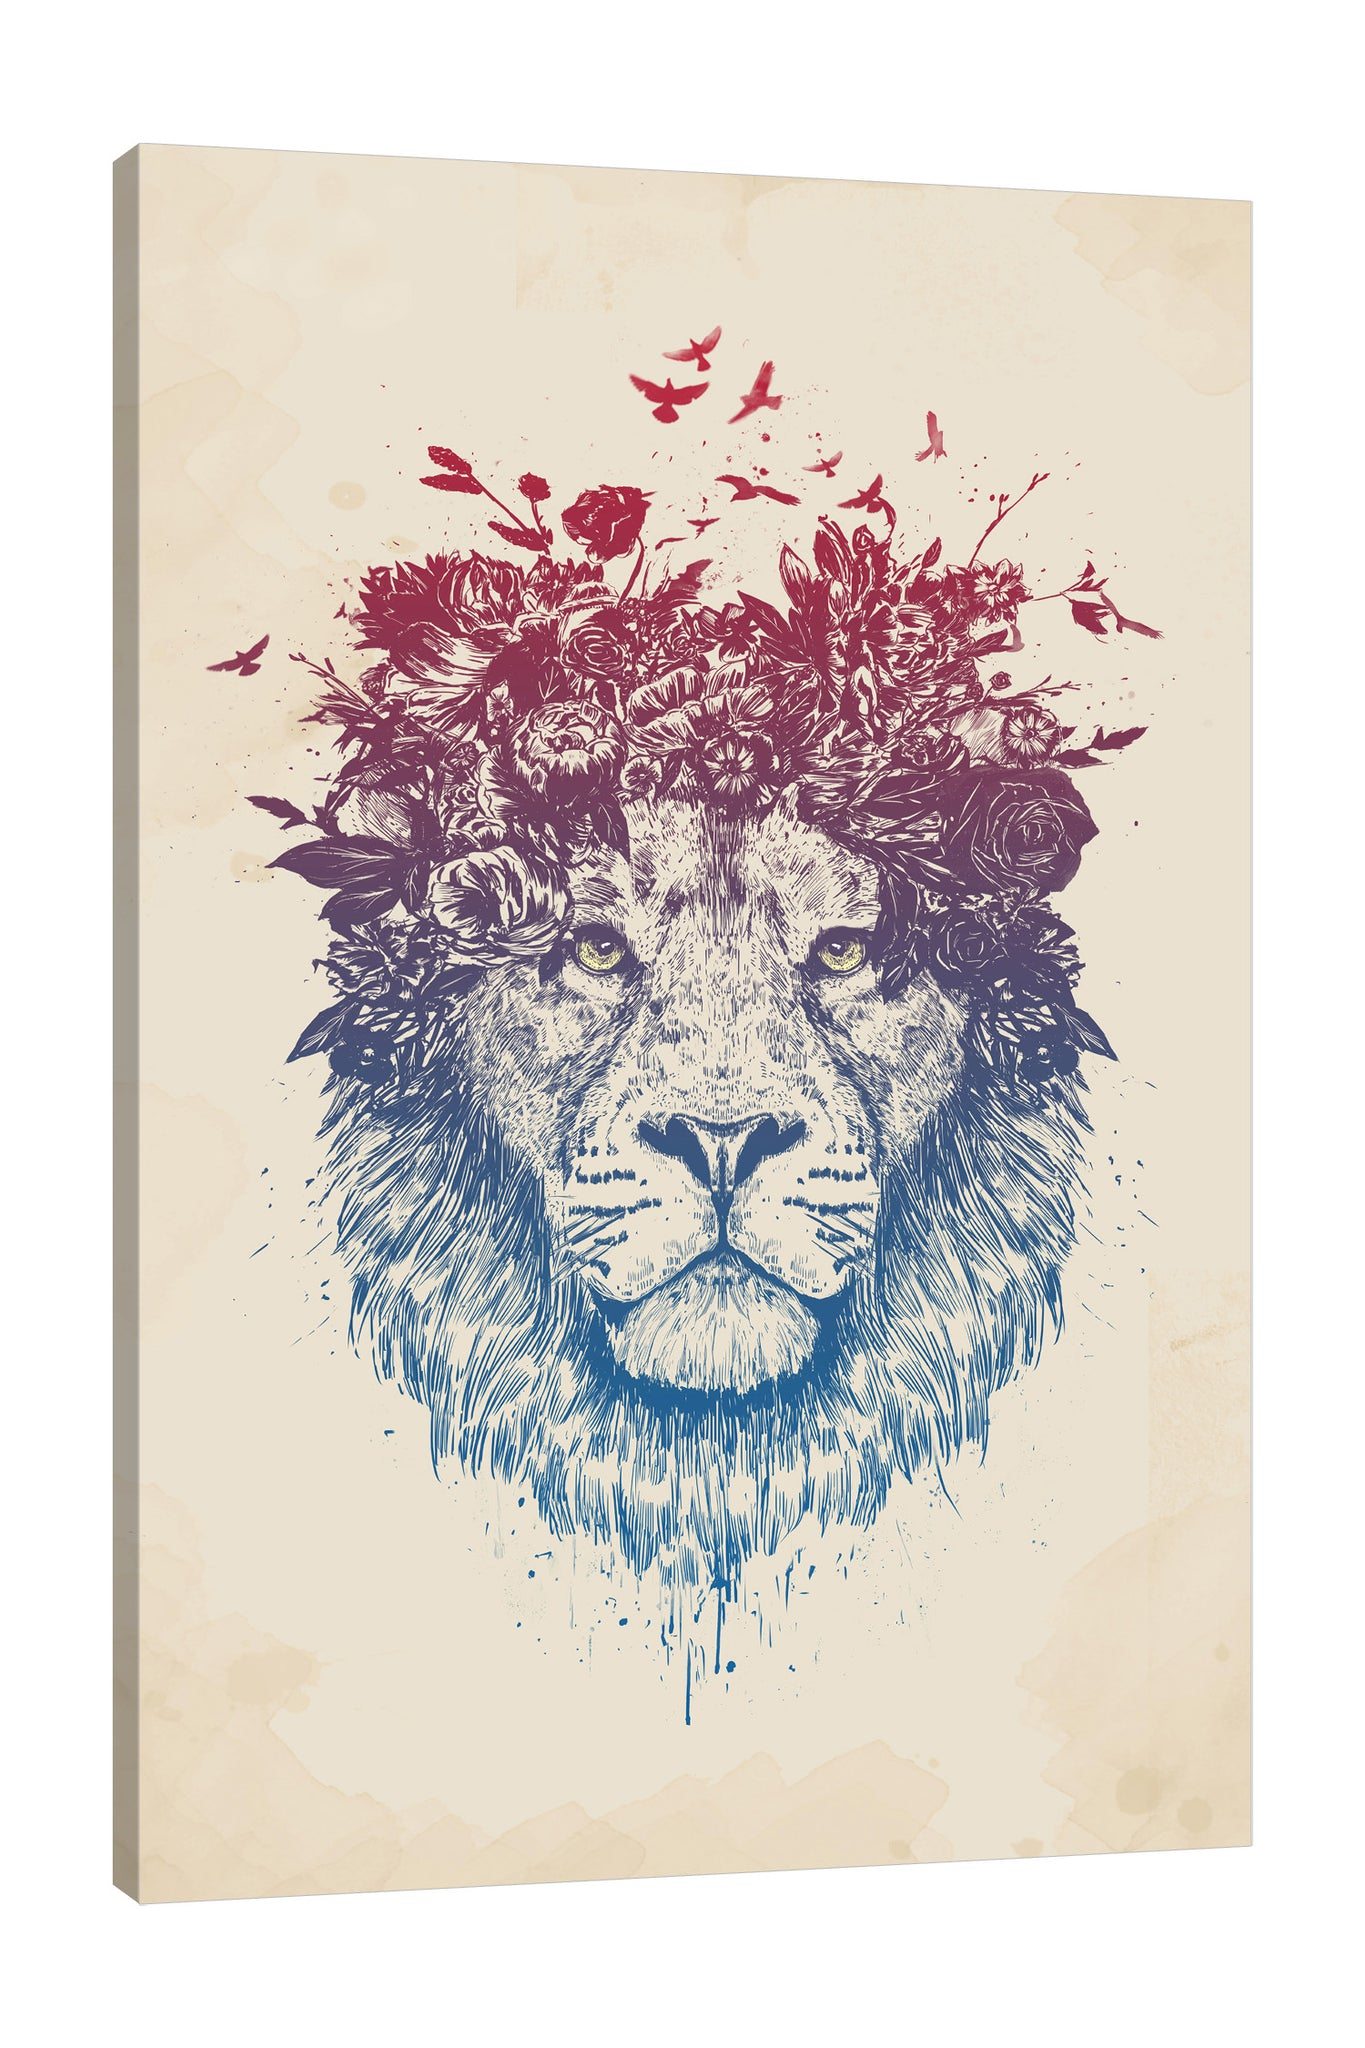 Balazs-Solti,Modern & Contemporary,Animals,Floral & Botanical,animals,animal,lion,lions,floral,florals,flowers,flower,birds,bird,paint drips,paint drip,Mist Gray,White,Gray,Lime Green,Purple,Charcoal Gray